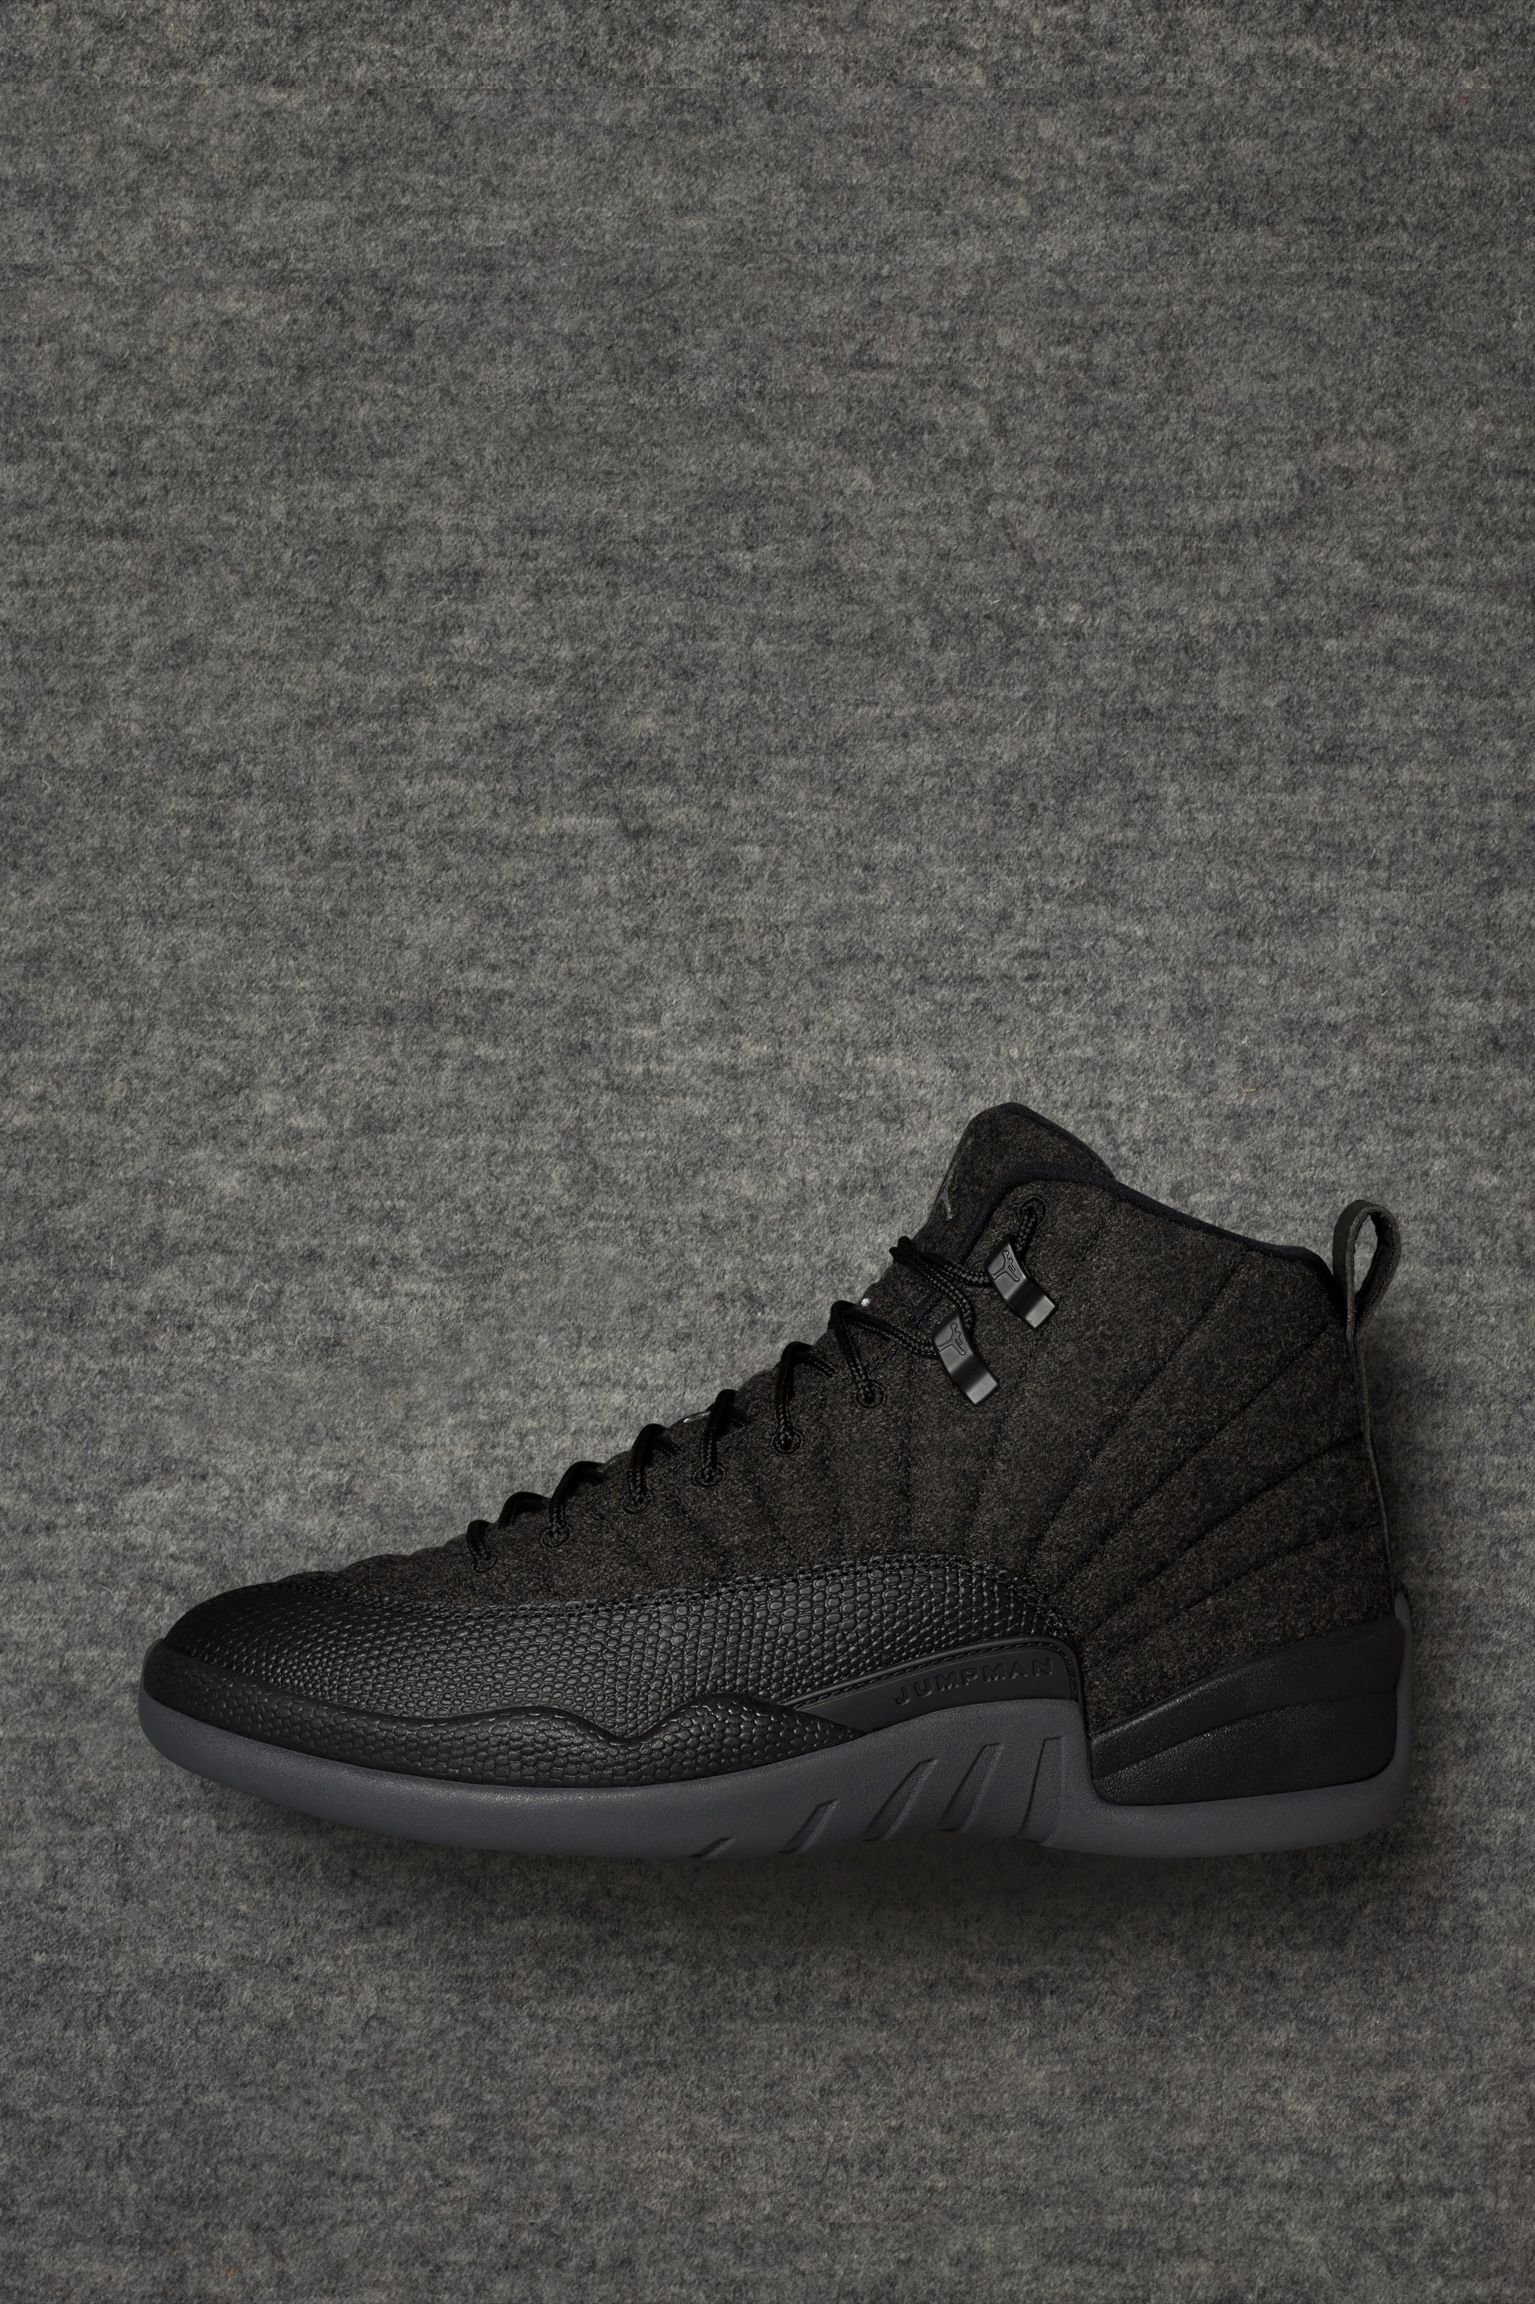 best service 80def 33857 Air Jordan 12 Retro Wool 'Dark Grey & Black' Release Date ...